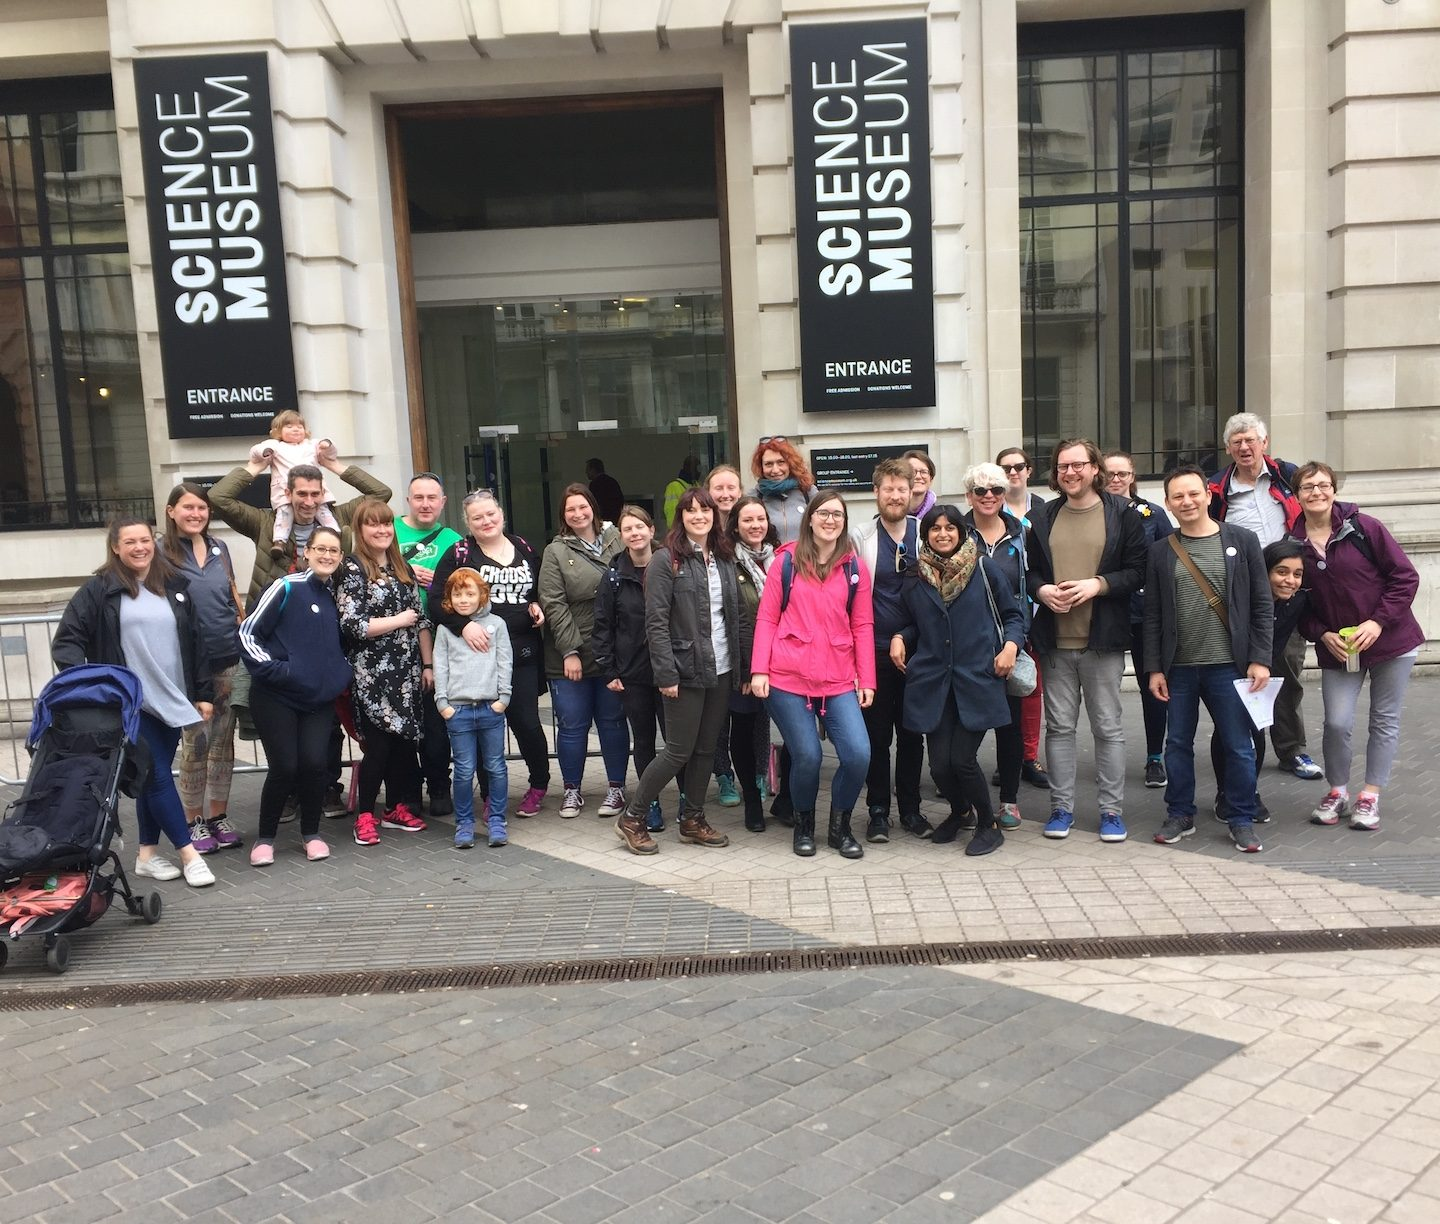 #MuseumMarathon Wrap Up – Raising Money for Autism in Museums